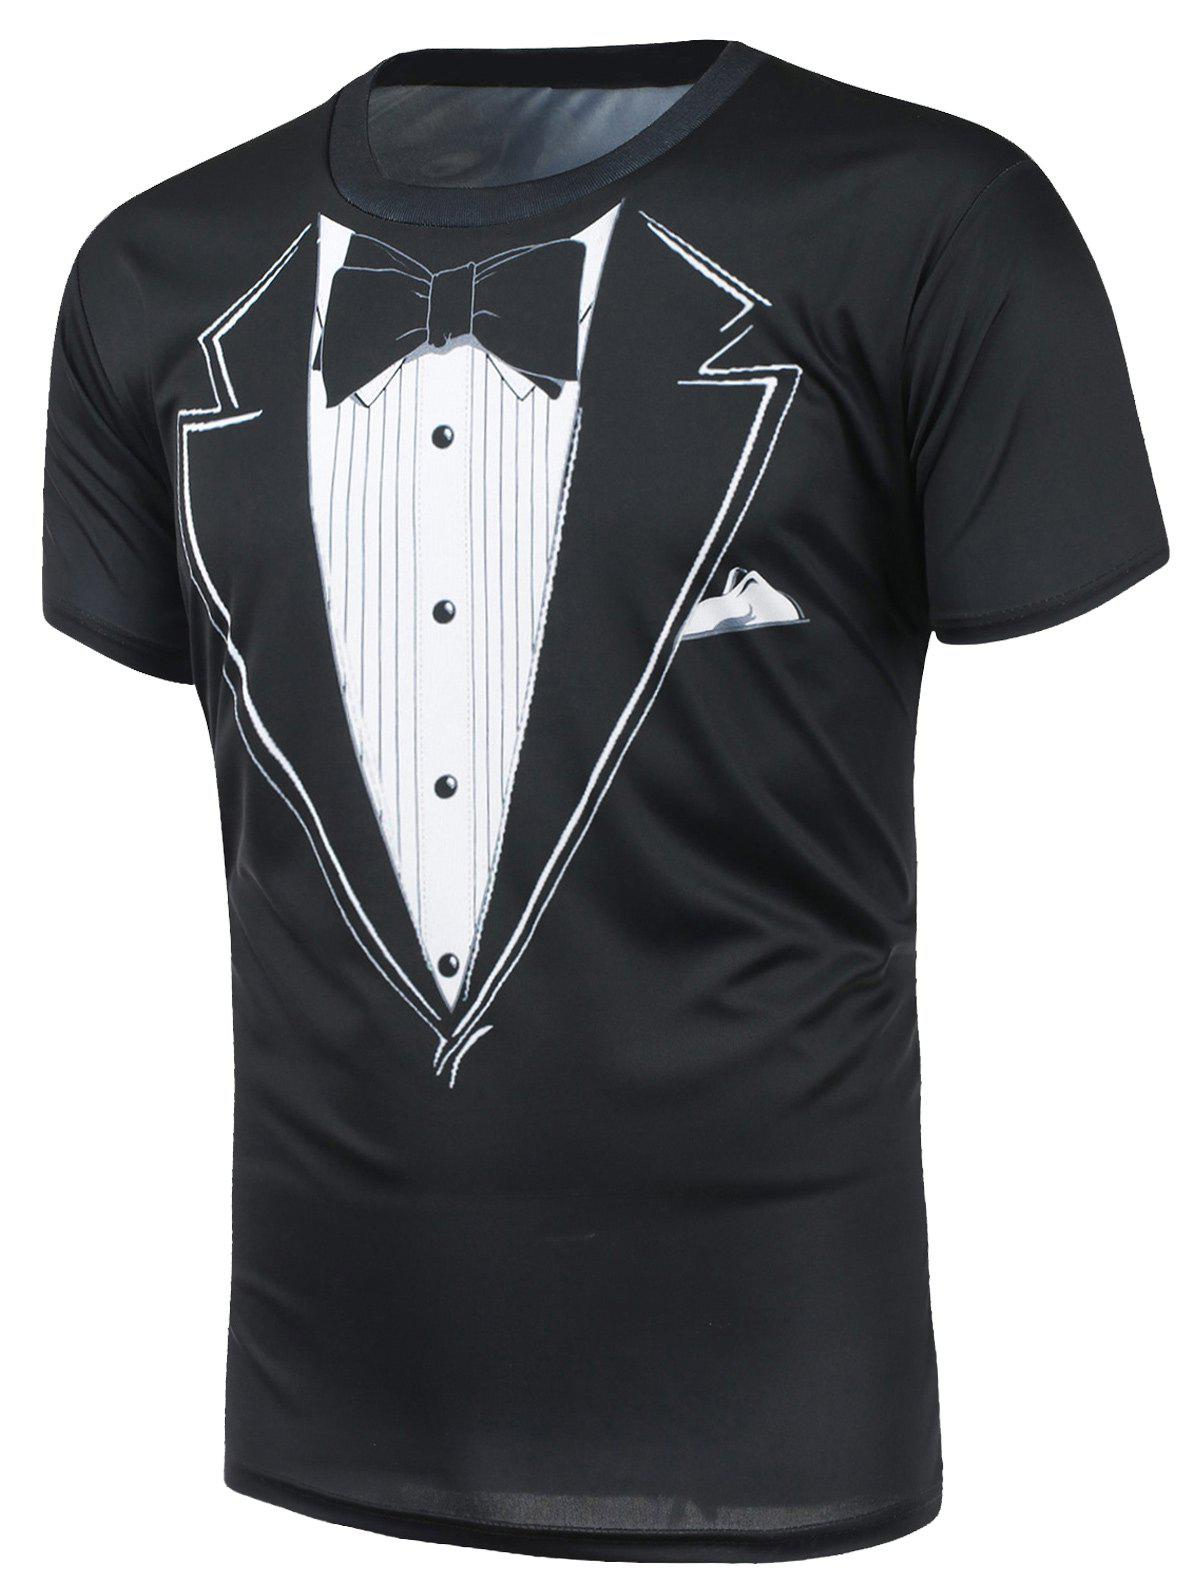 Short Sleeve Bow Tie Print T-Shirt - BLACK S